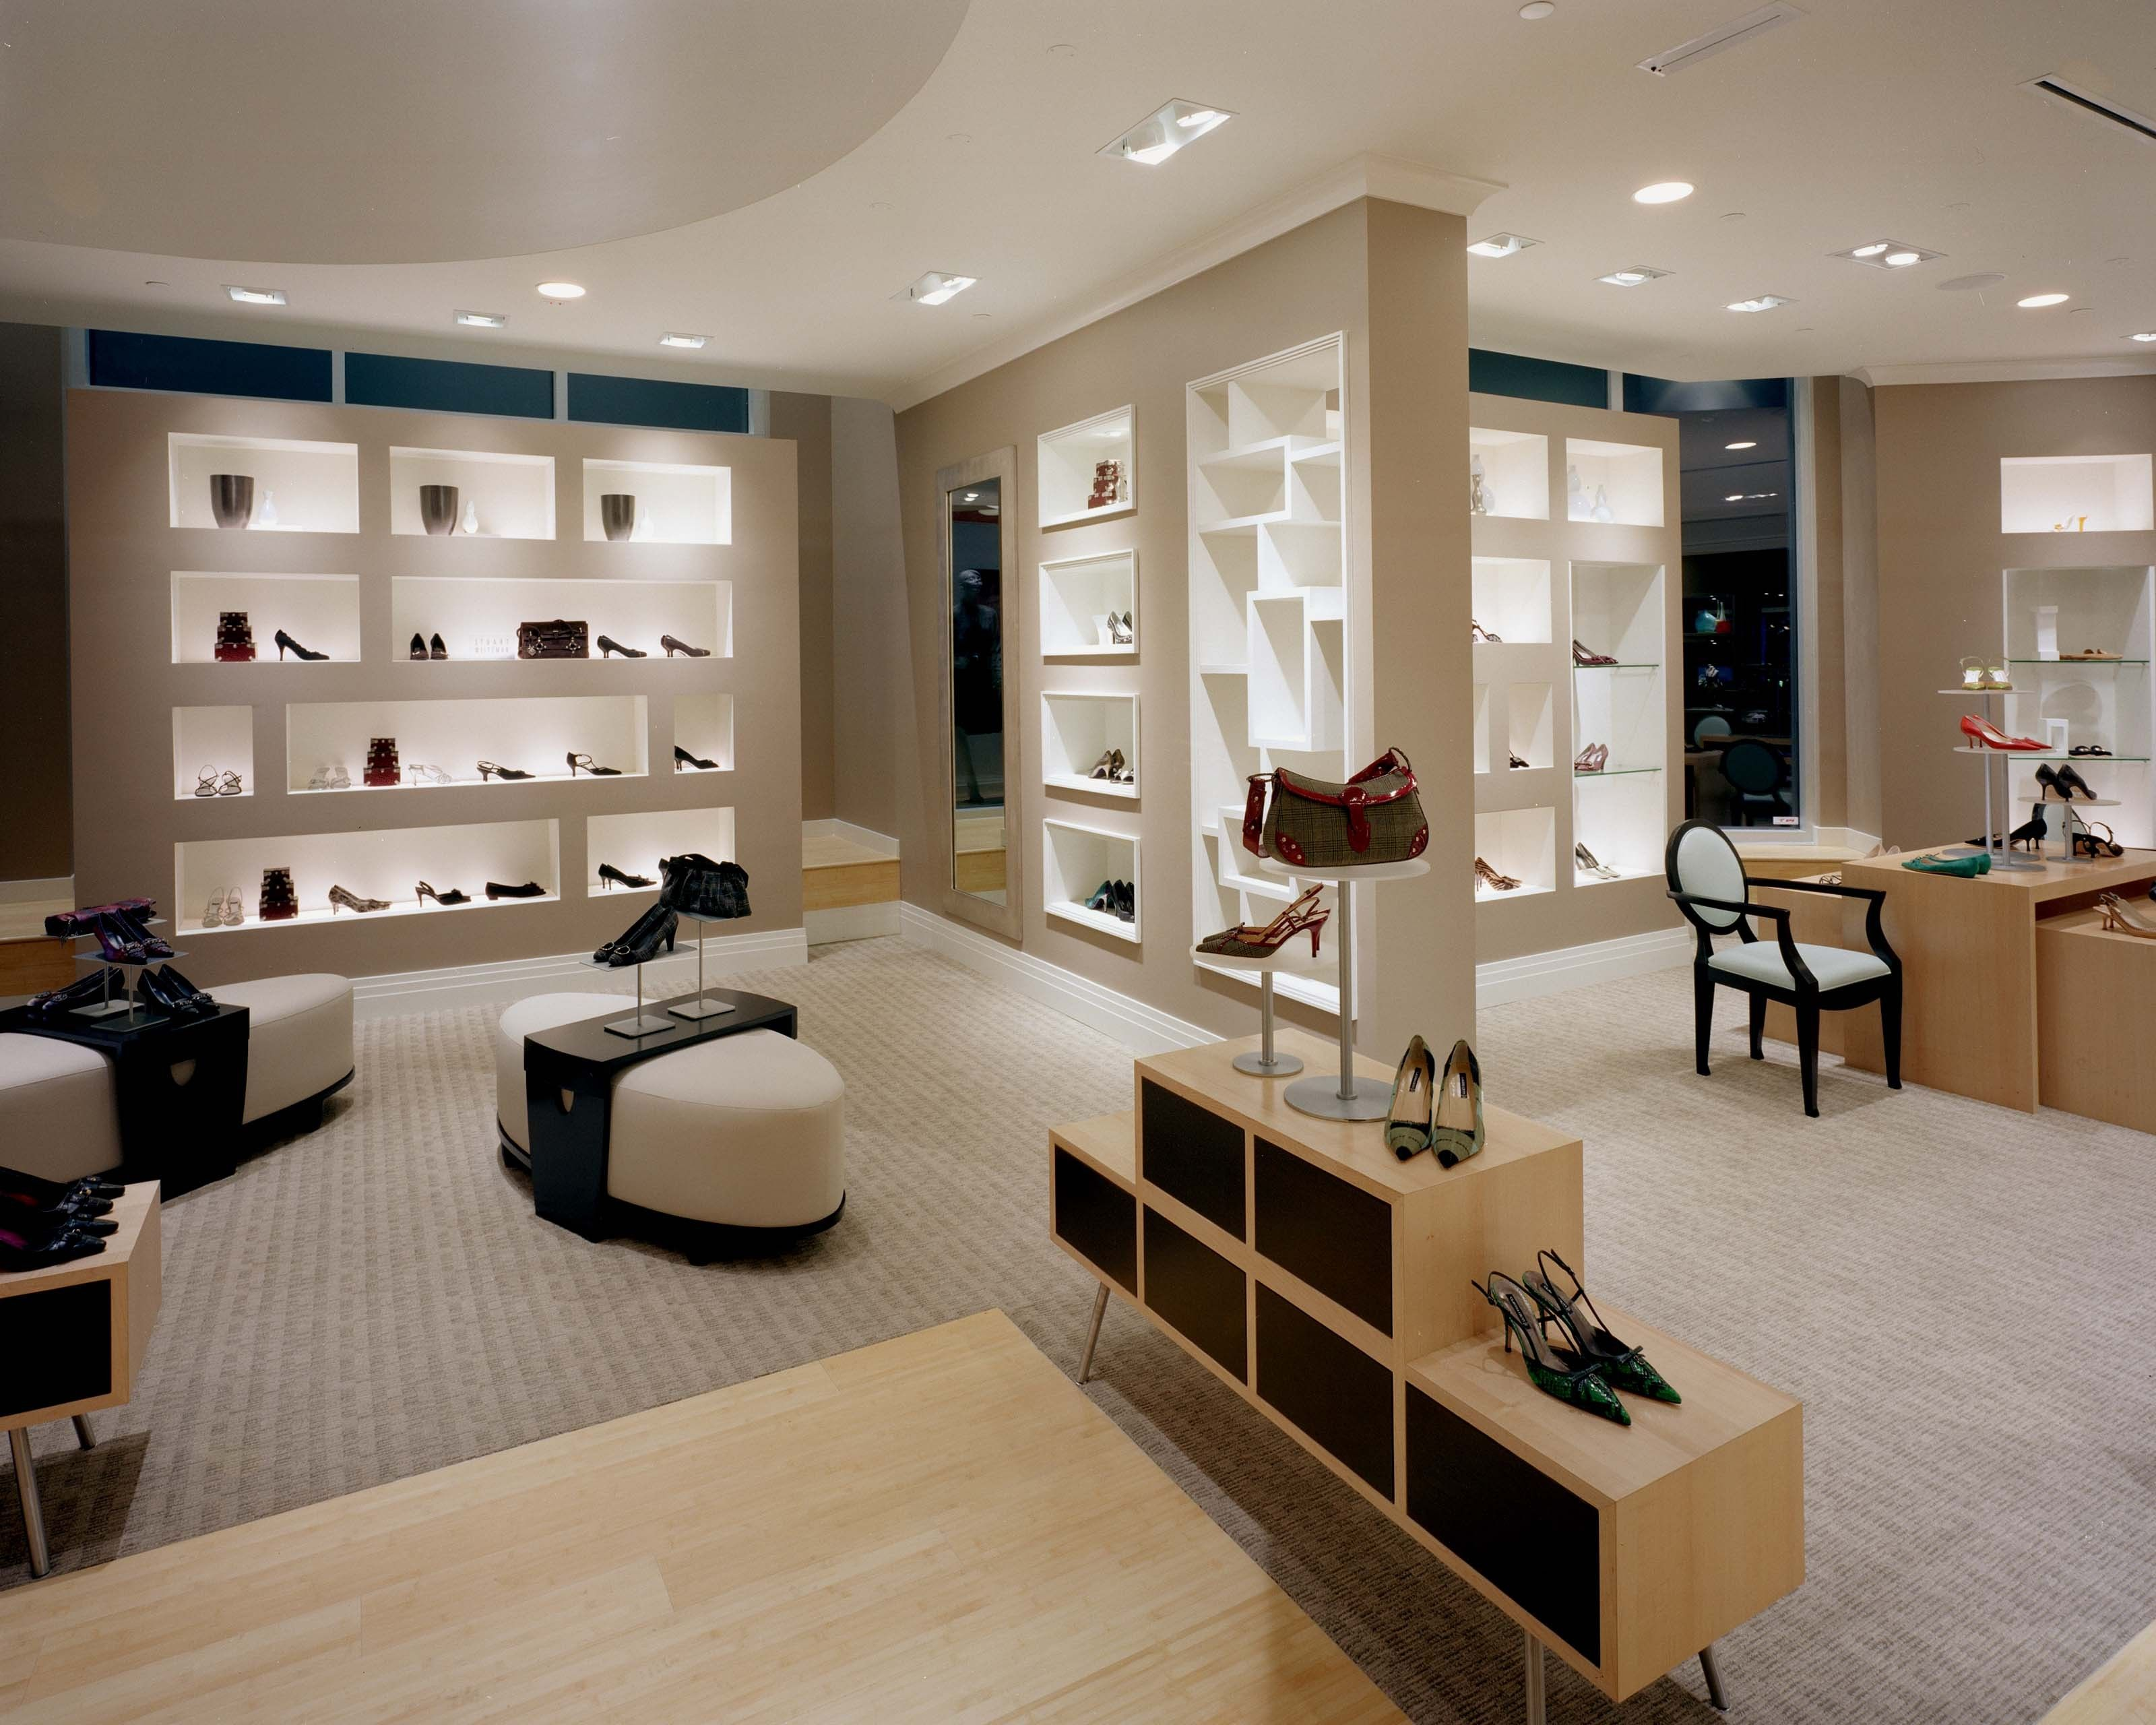 15 tips for how to design your retail store - Storefront Design Ideas